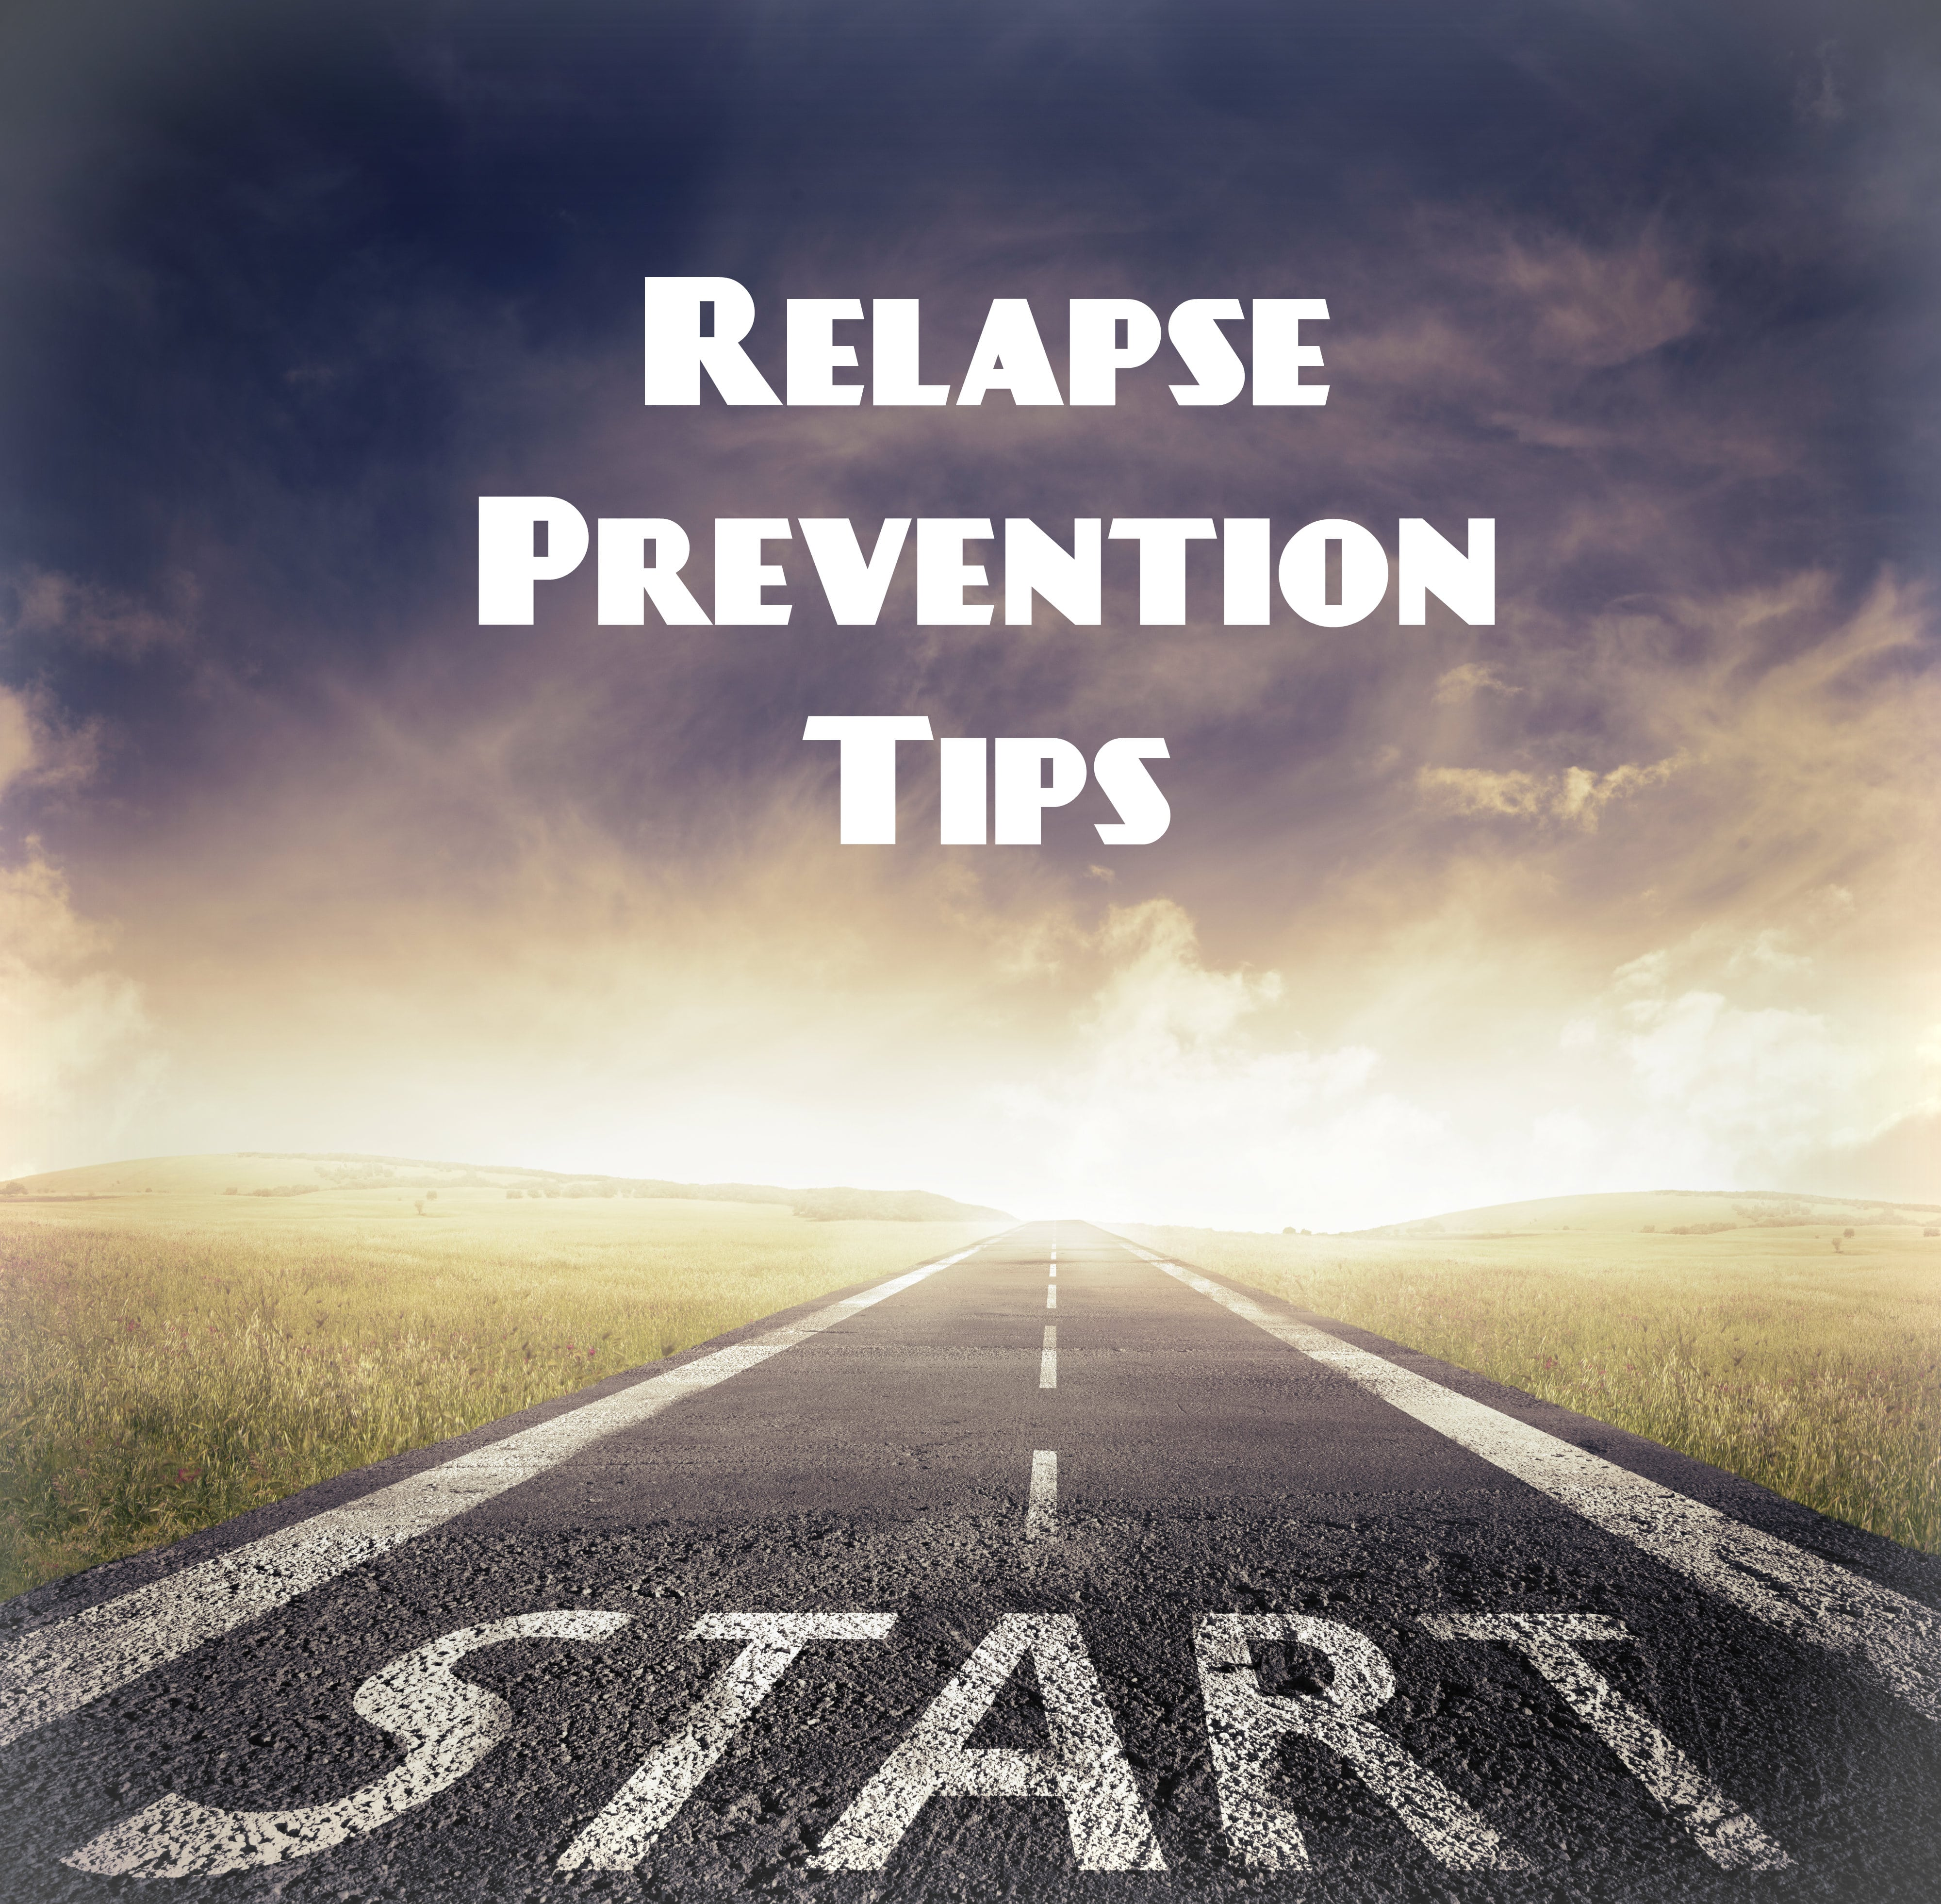 Tips-To-Prevent-Relapse-In-Dual-Diagnosis-Relapse-Prevention-Tips